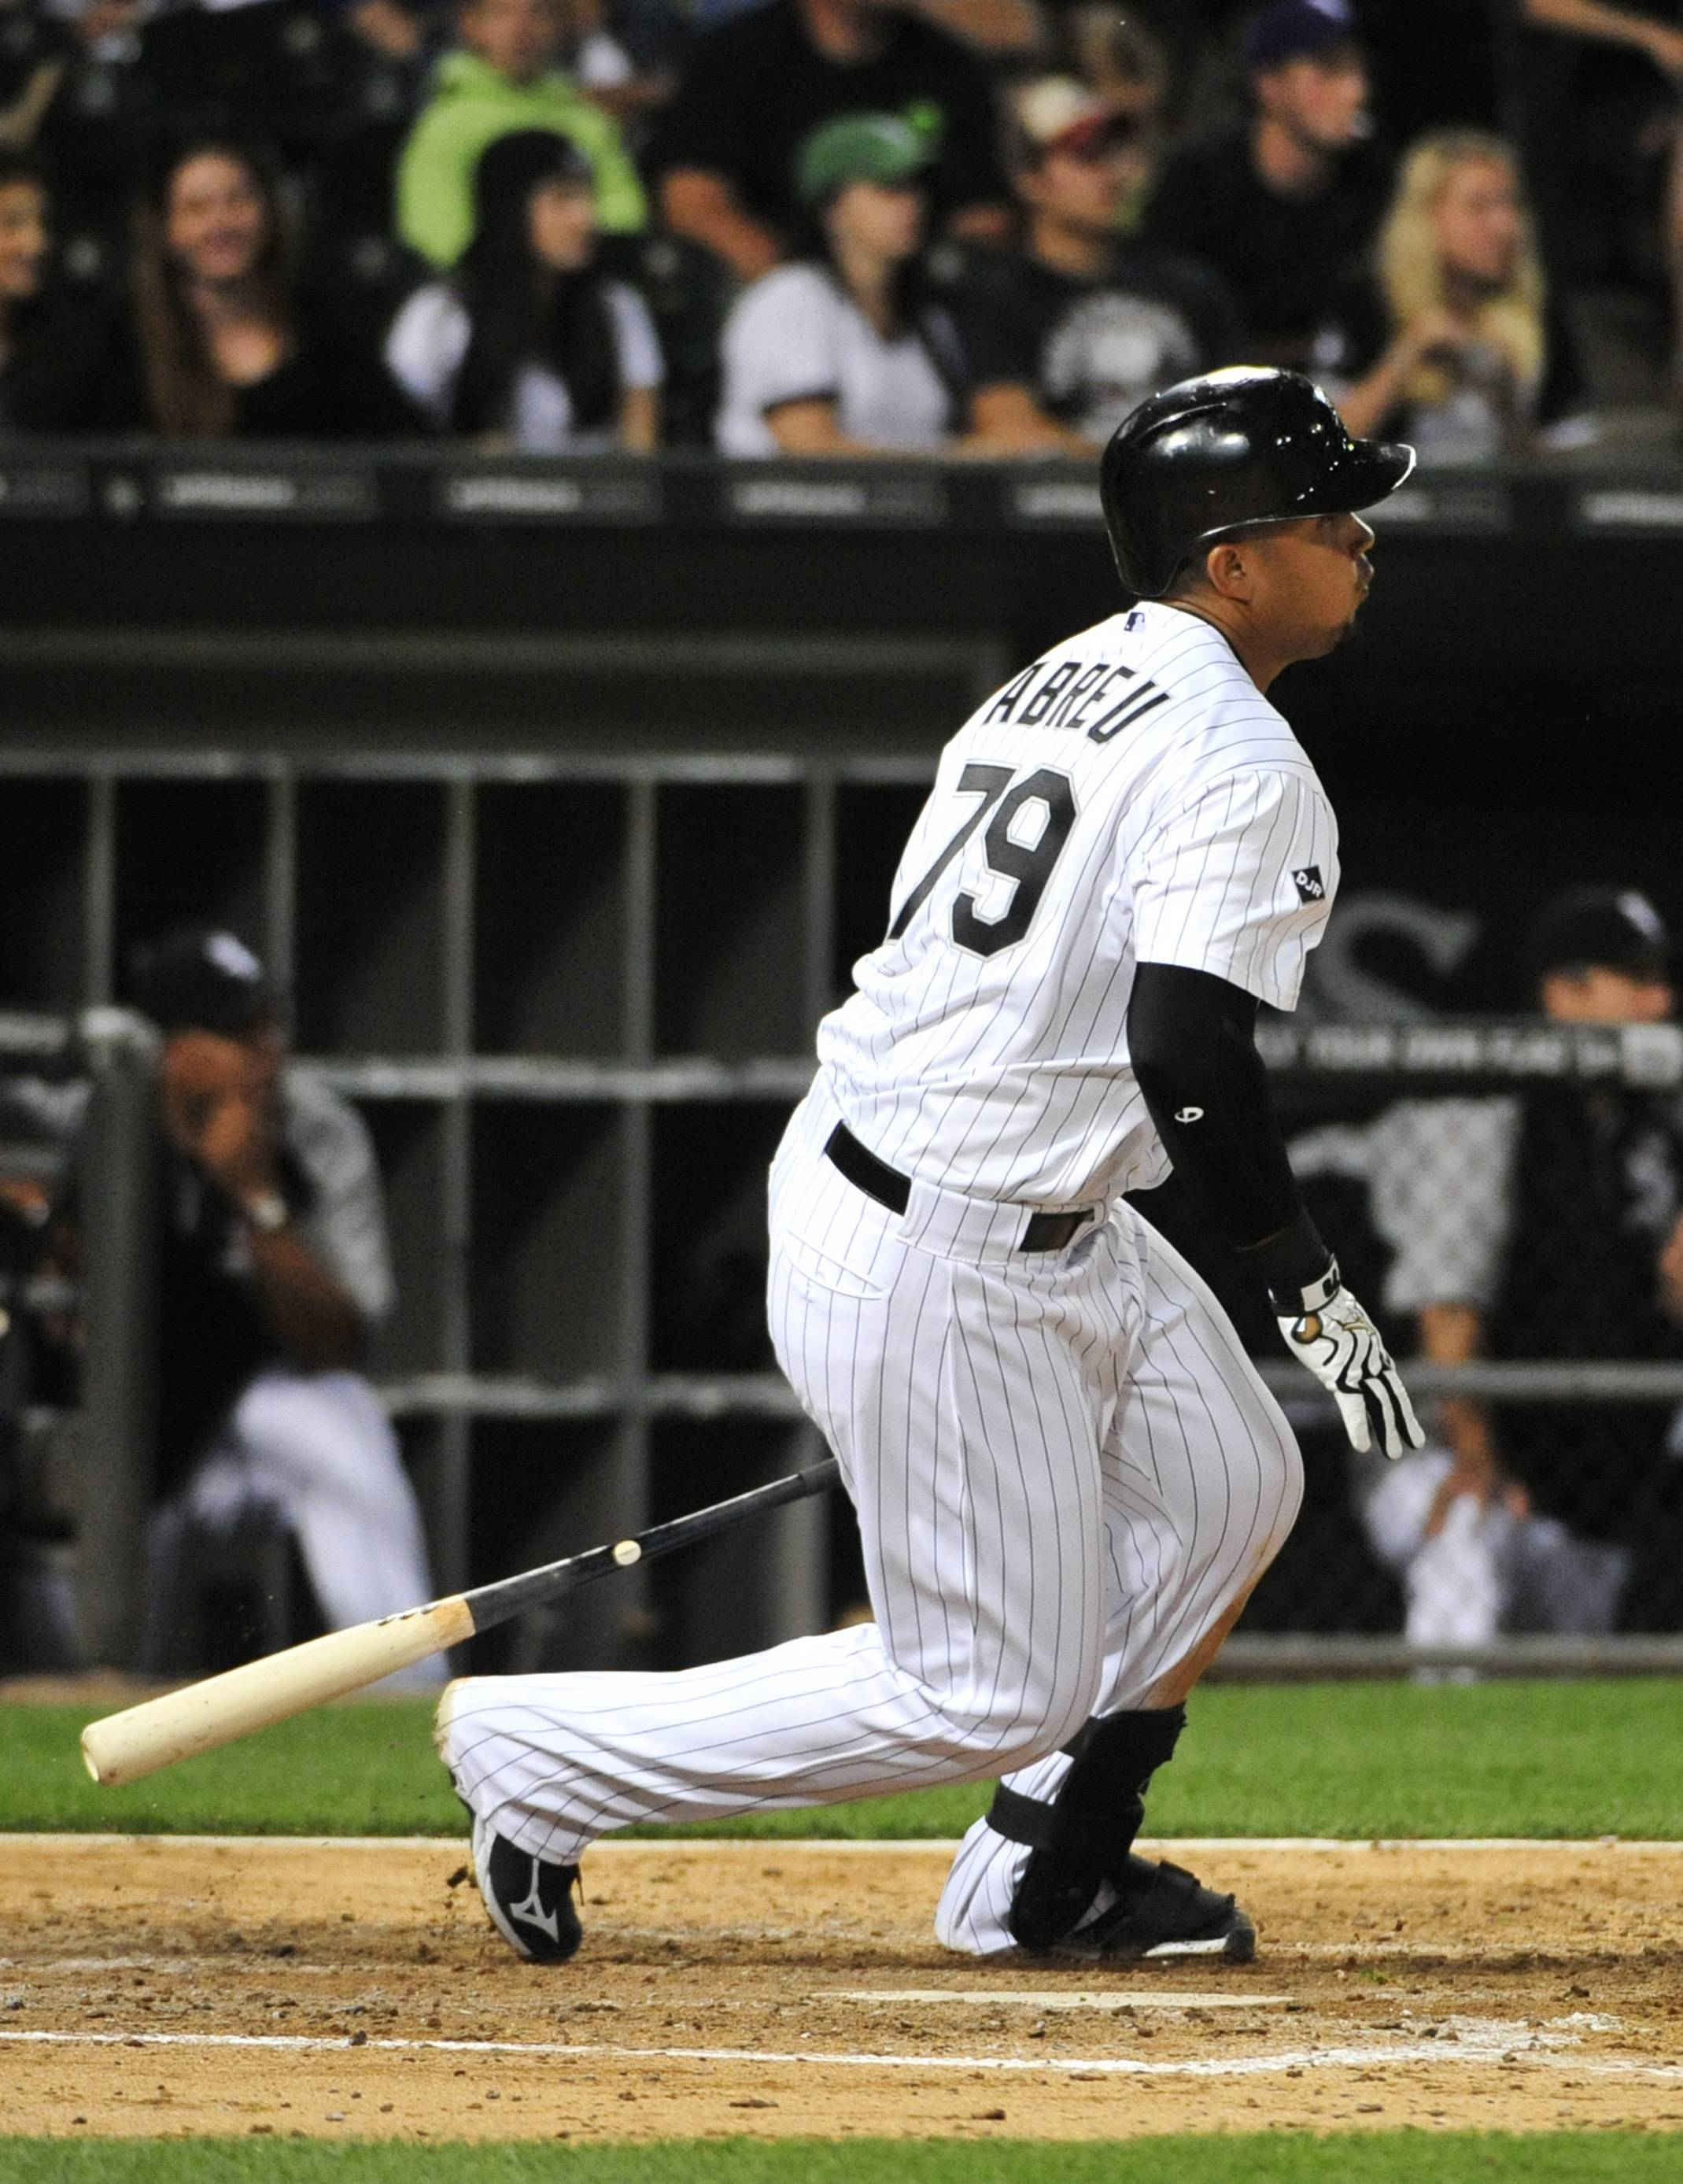 Jose Abreu extended his hitting streak to 21 games Friday night in the White Sox' victory over the Twins.